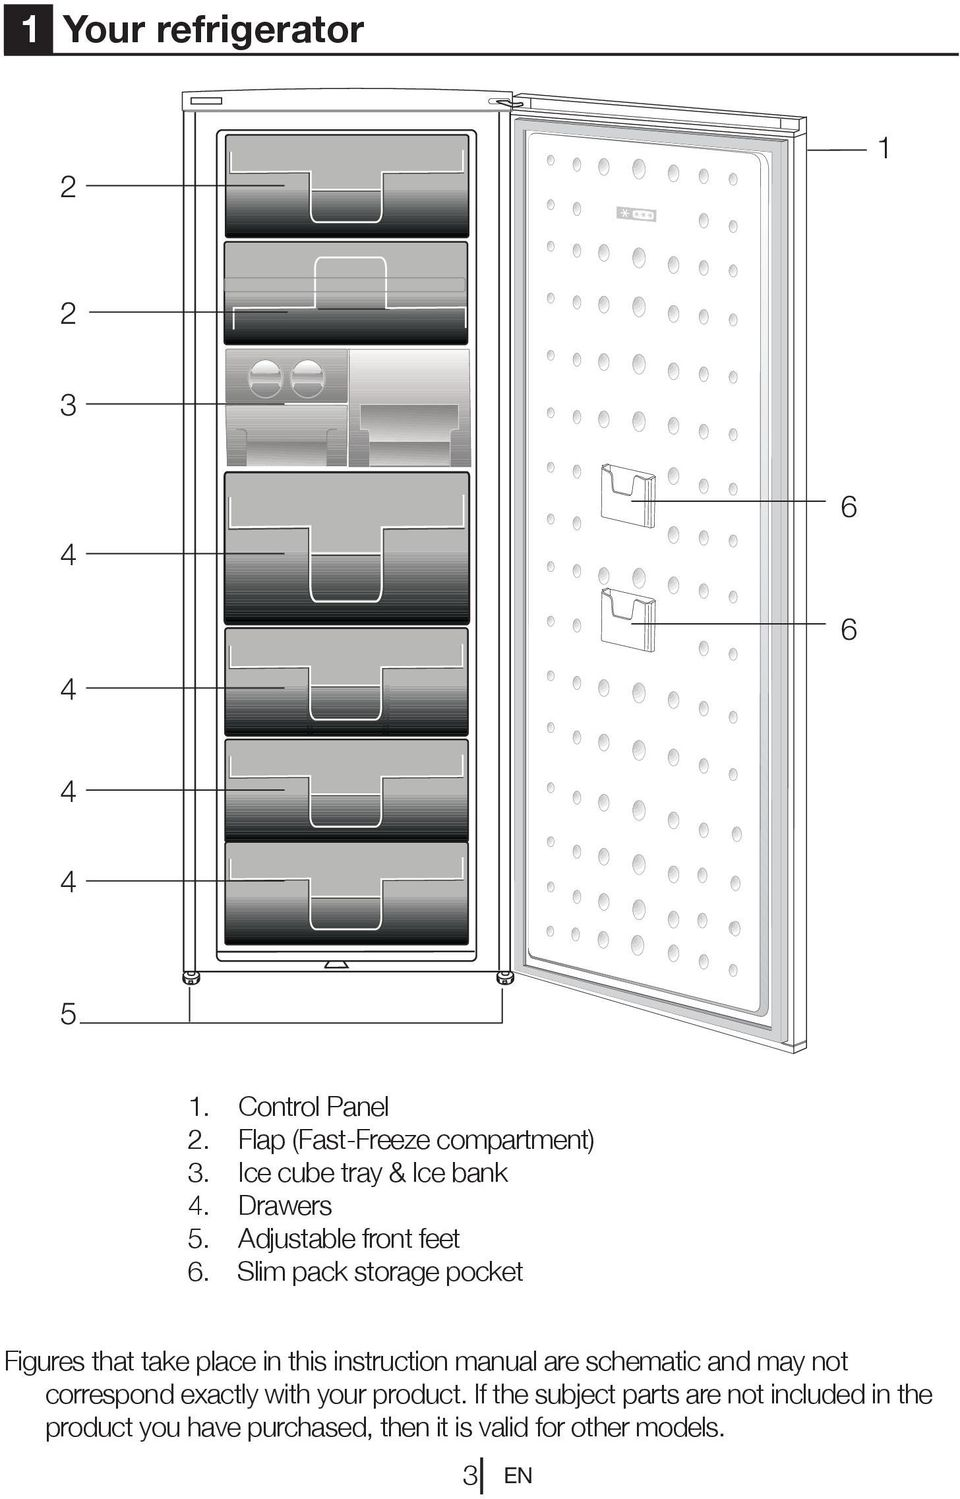 Slim pack storage pocket Figures that take place in this instruction manual are schematic and may not